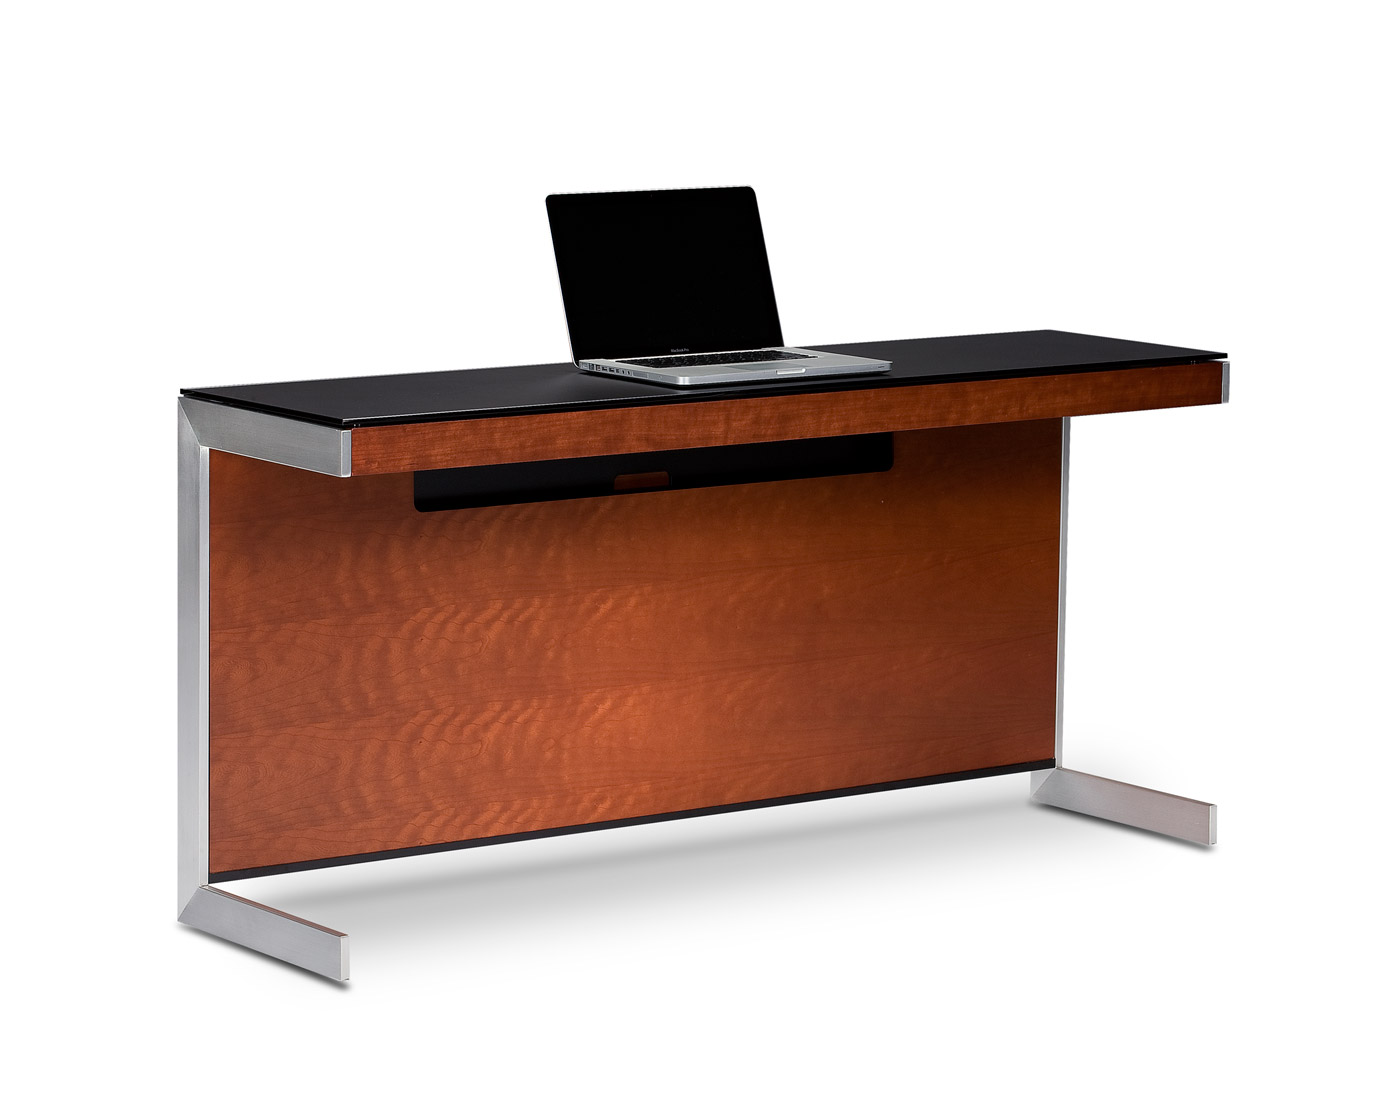 by built a luxurious with in sequel chocolate the desk and top bdi products glass